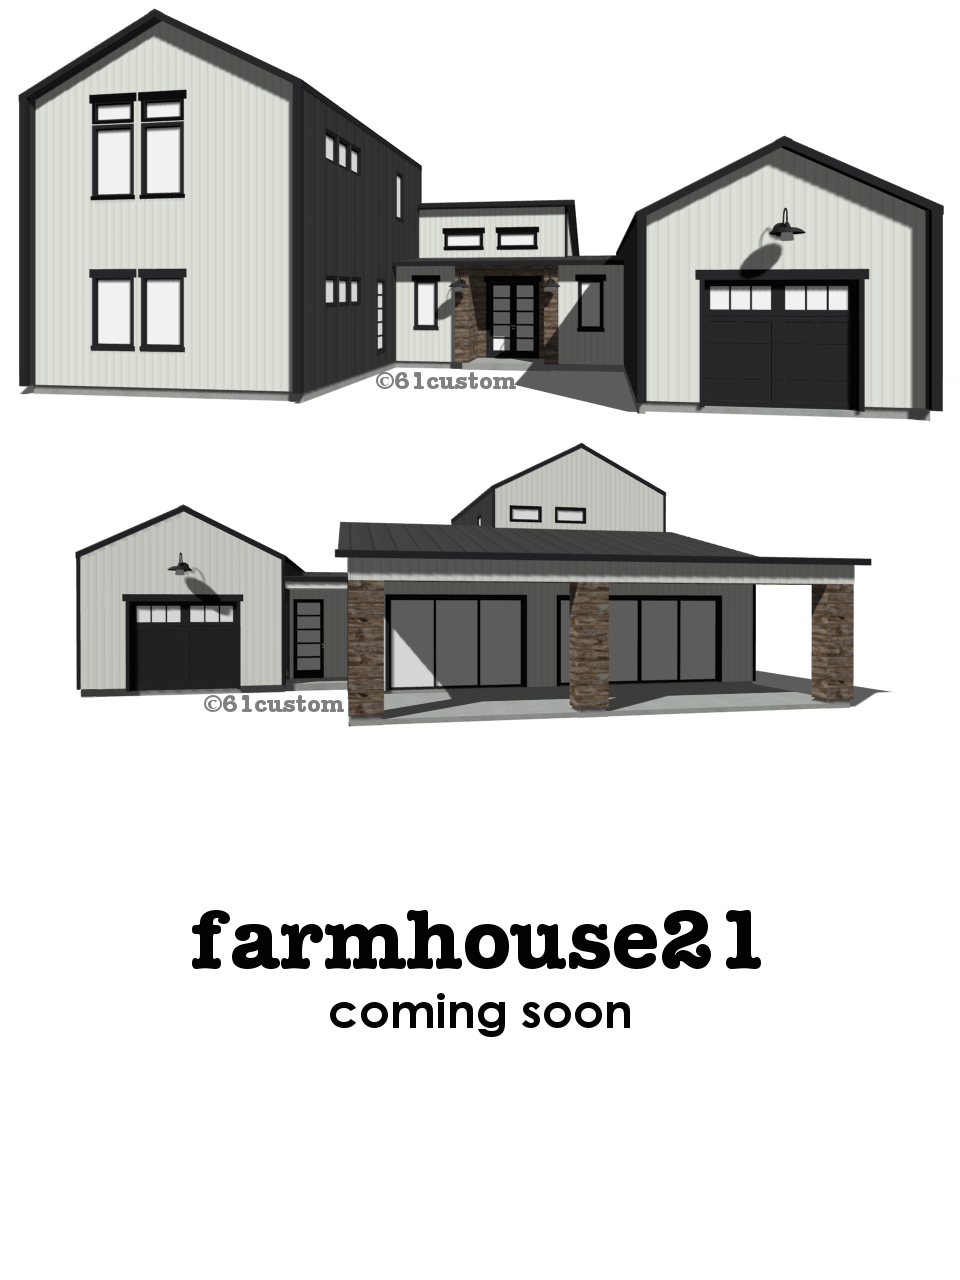 Farmhouse21 modern house plan 61custom contemporary for Modern home layout plans